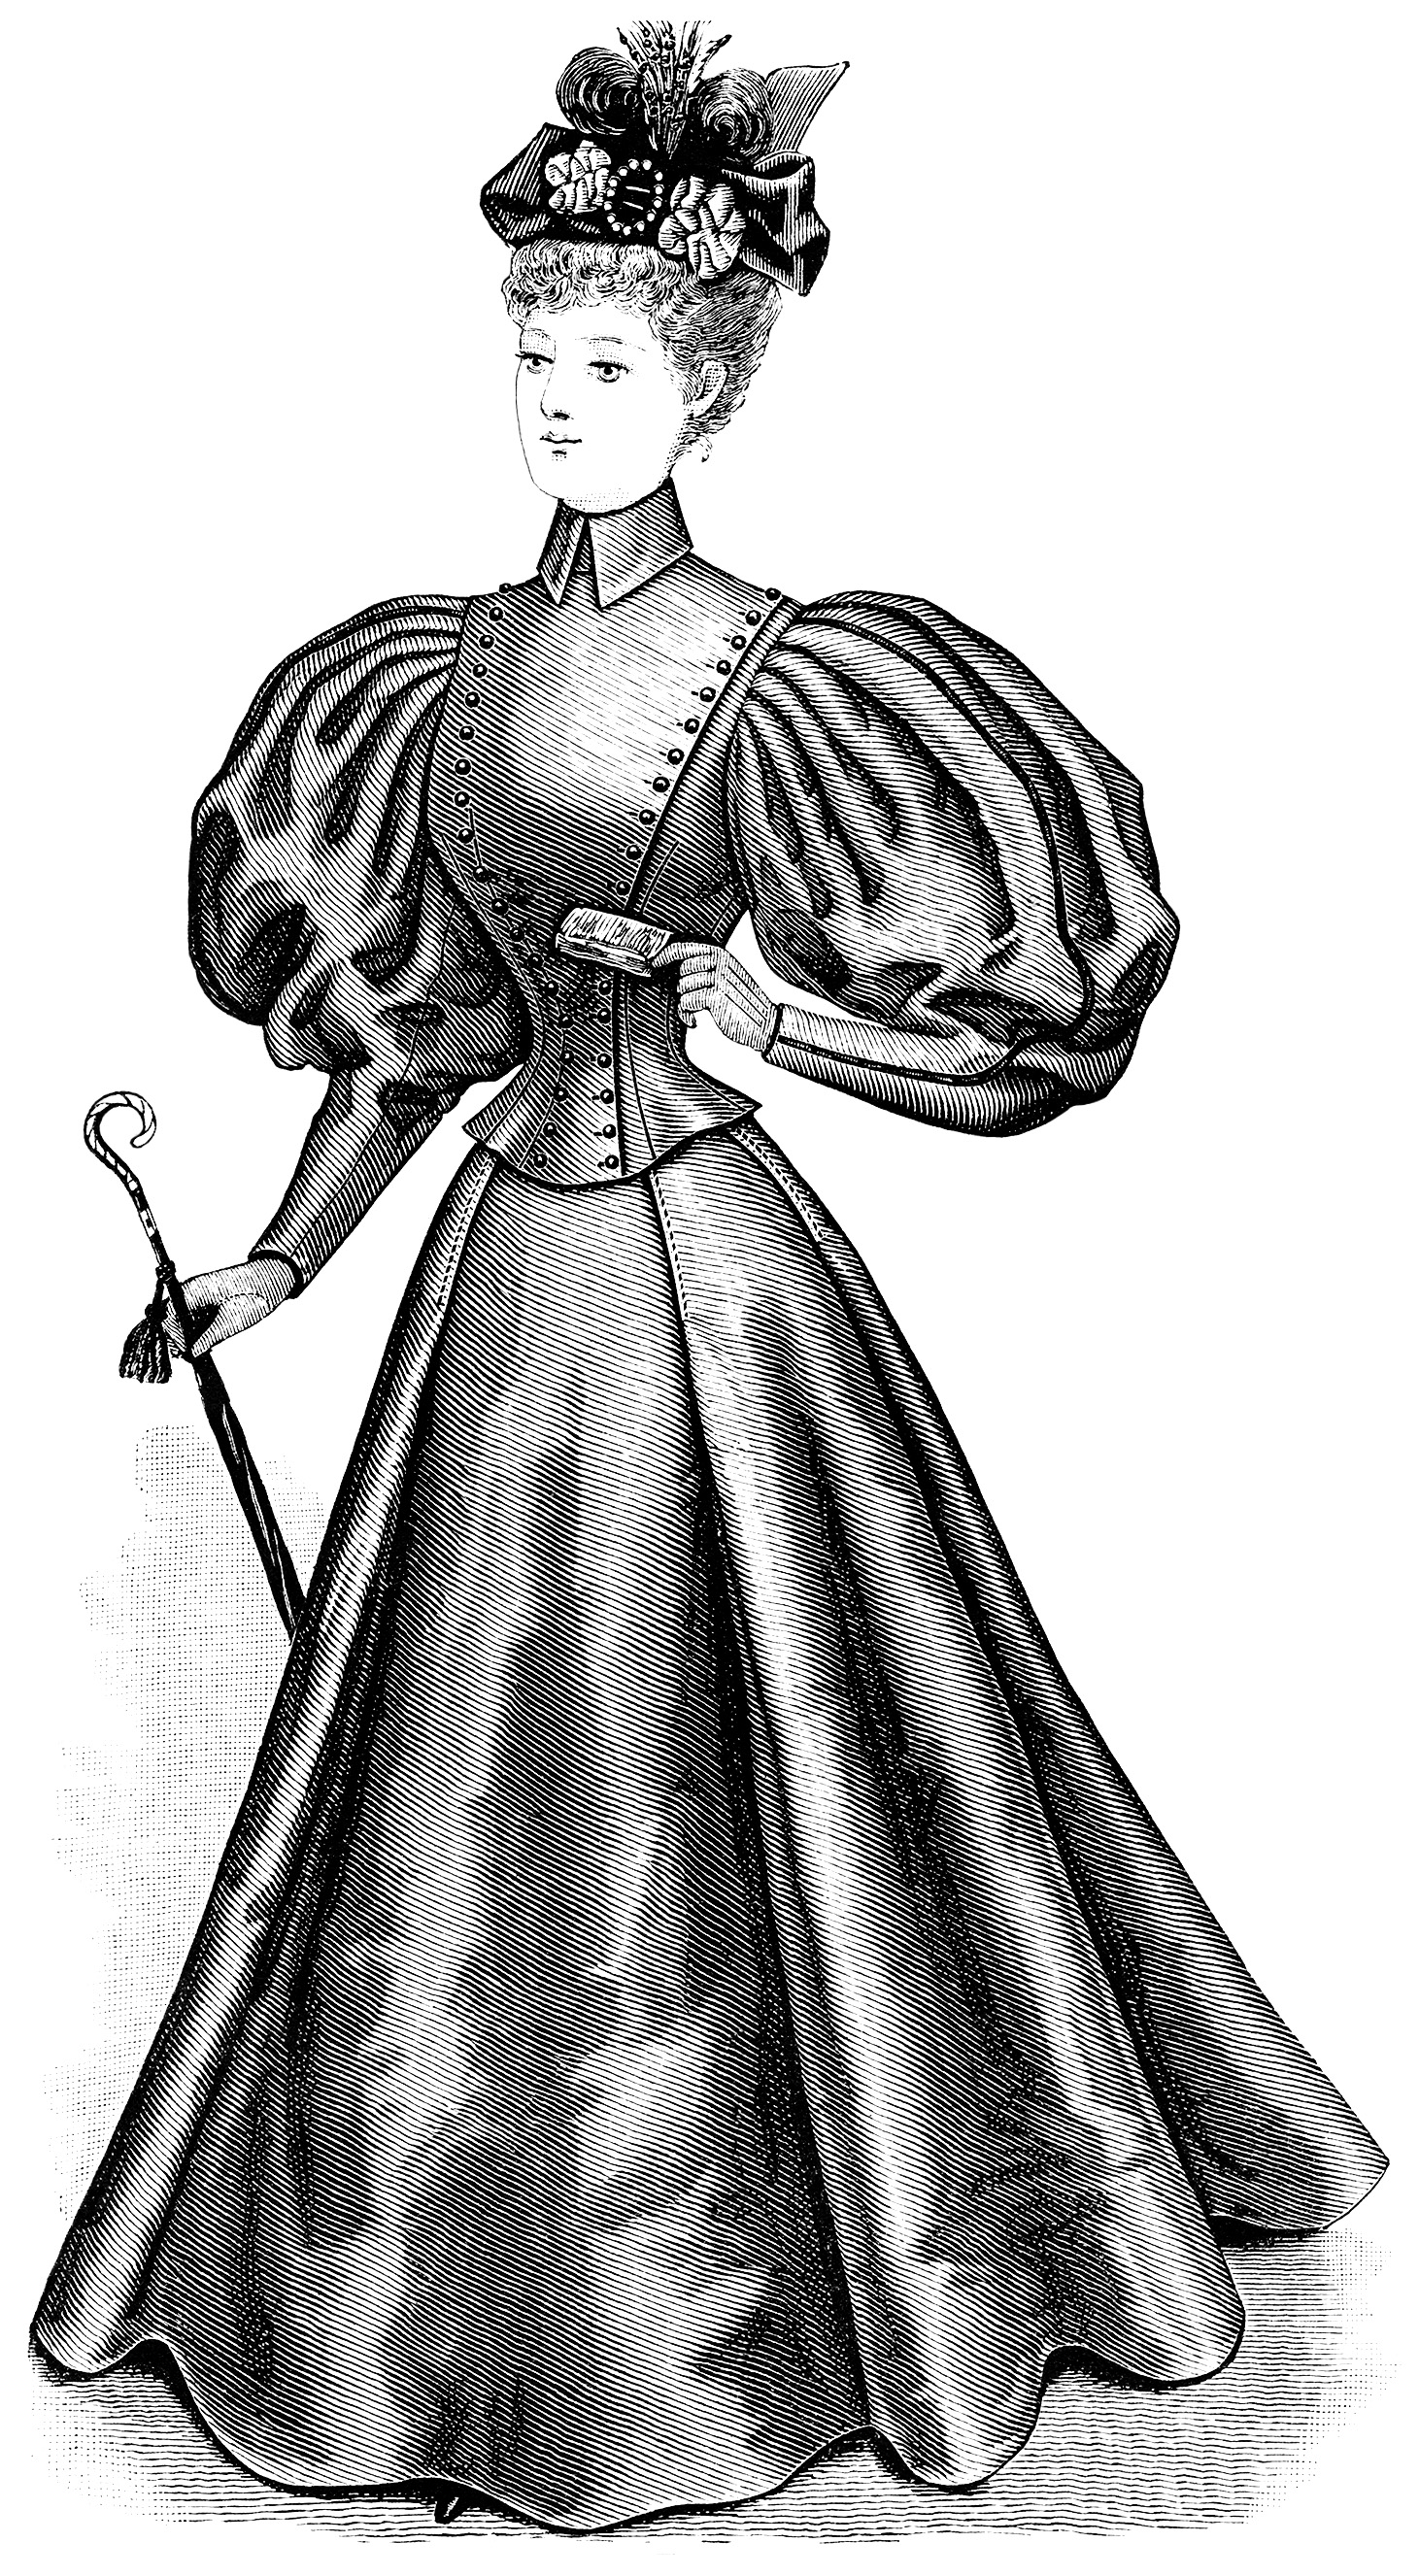 Victorian lady clip art, ladies promenade toilette, black and white illustration, vintage woman clipart, Victorian fashion image, antique clothing graphics